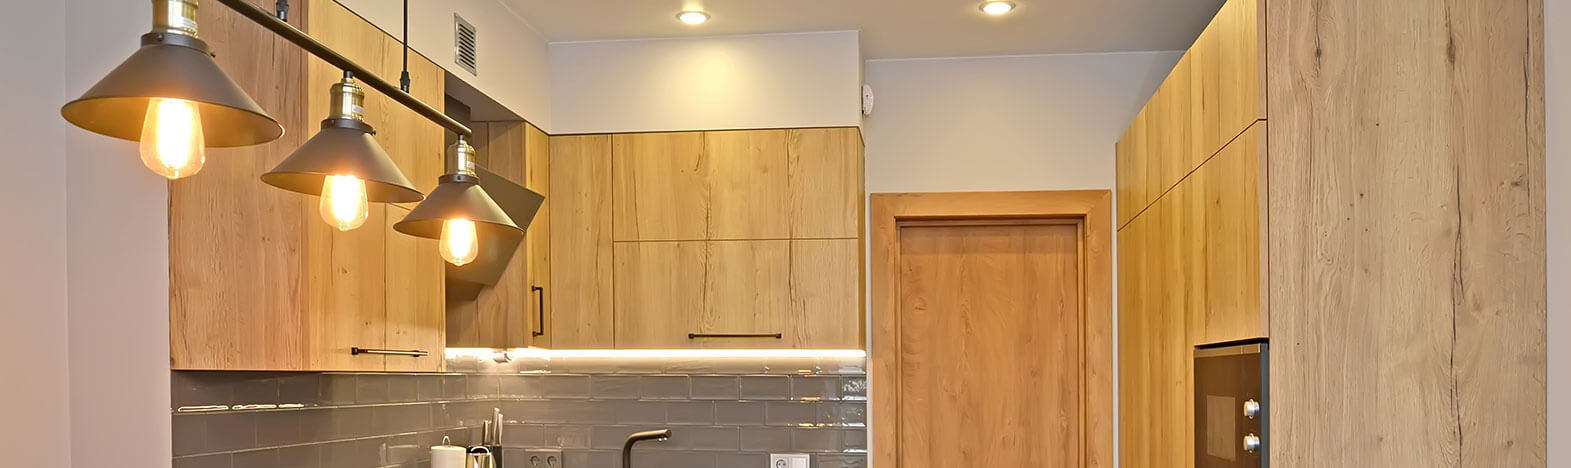 Toronto, Scarborough and Oshawa Electrical Contractor